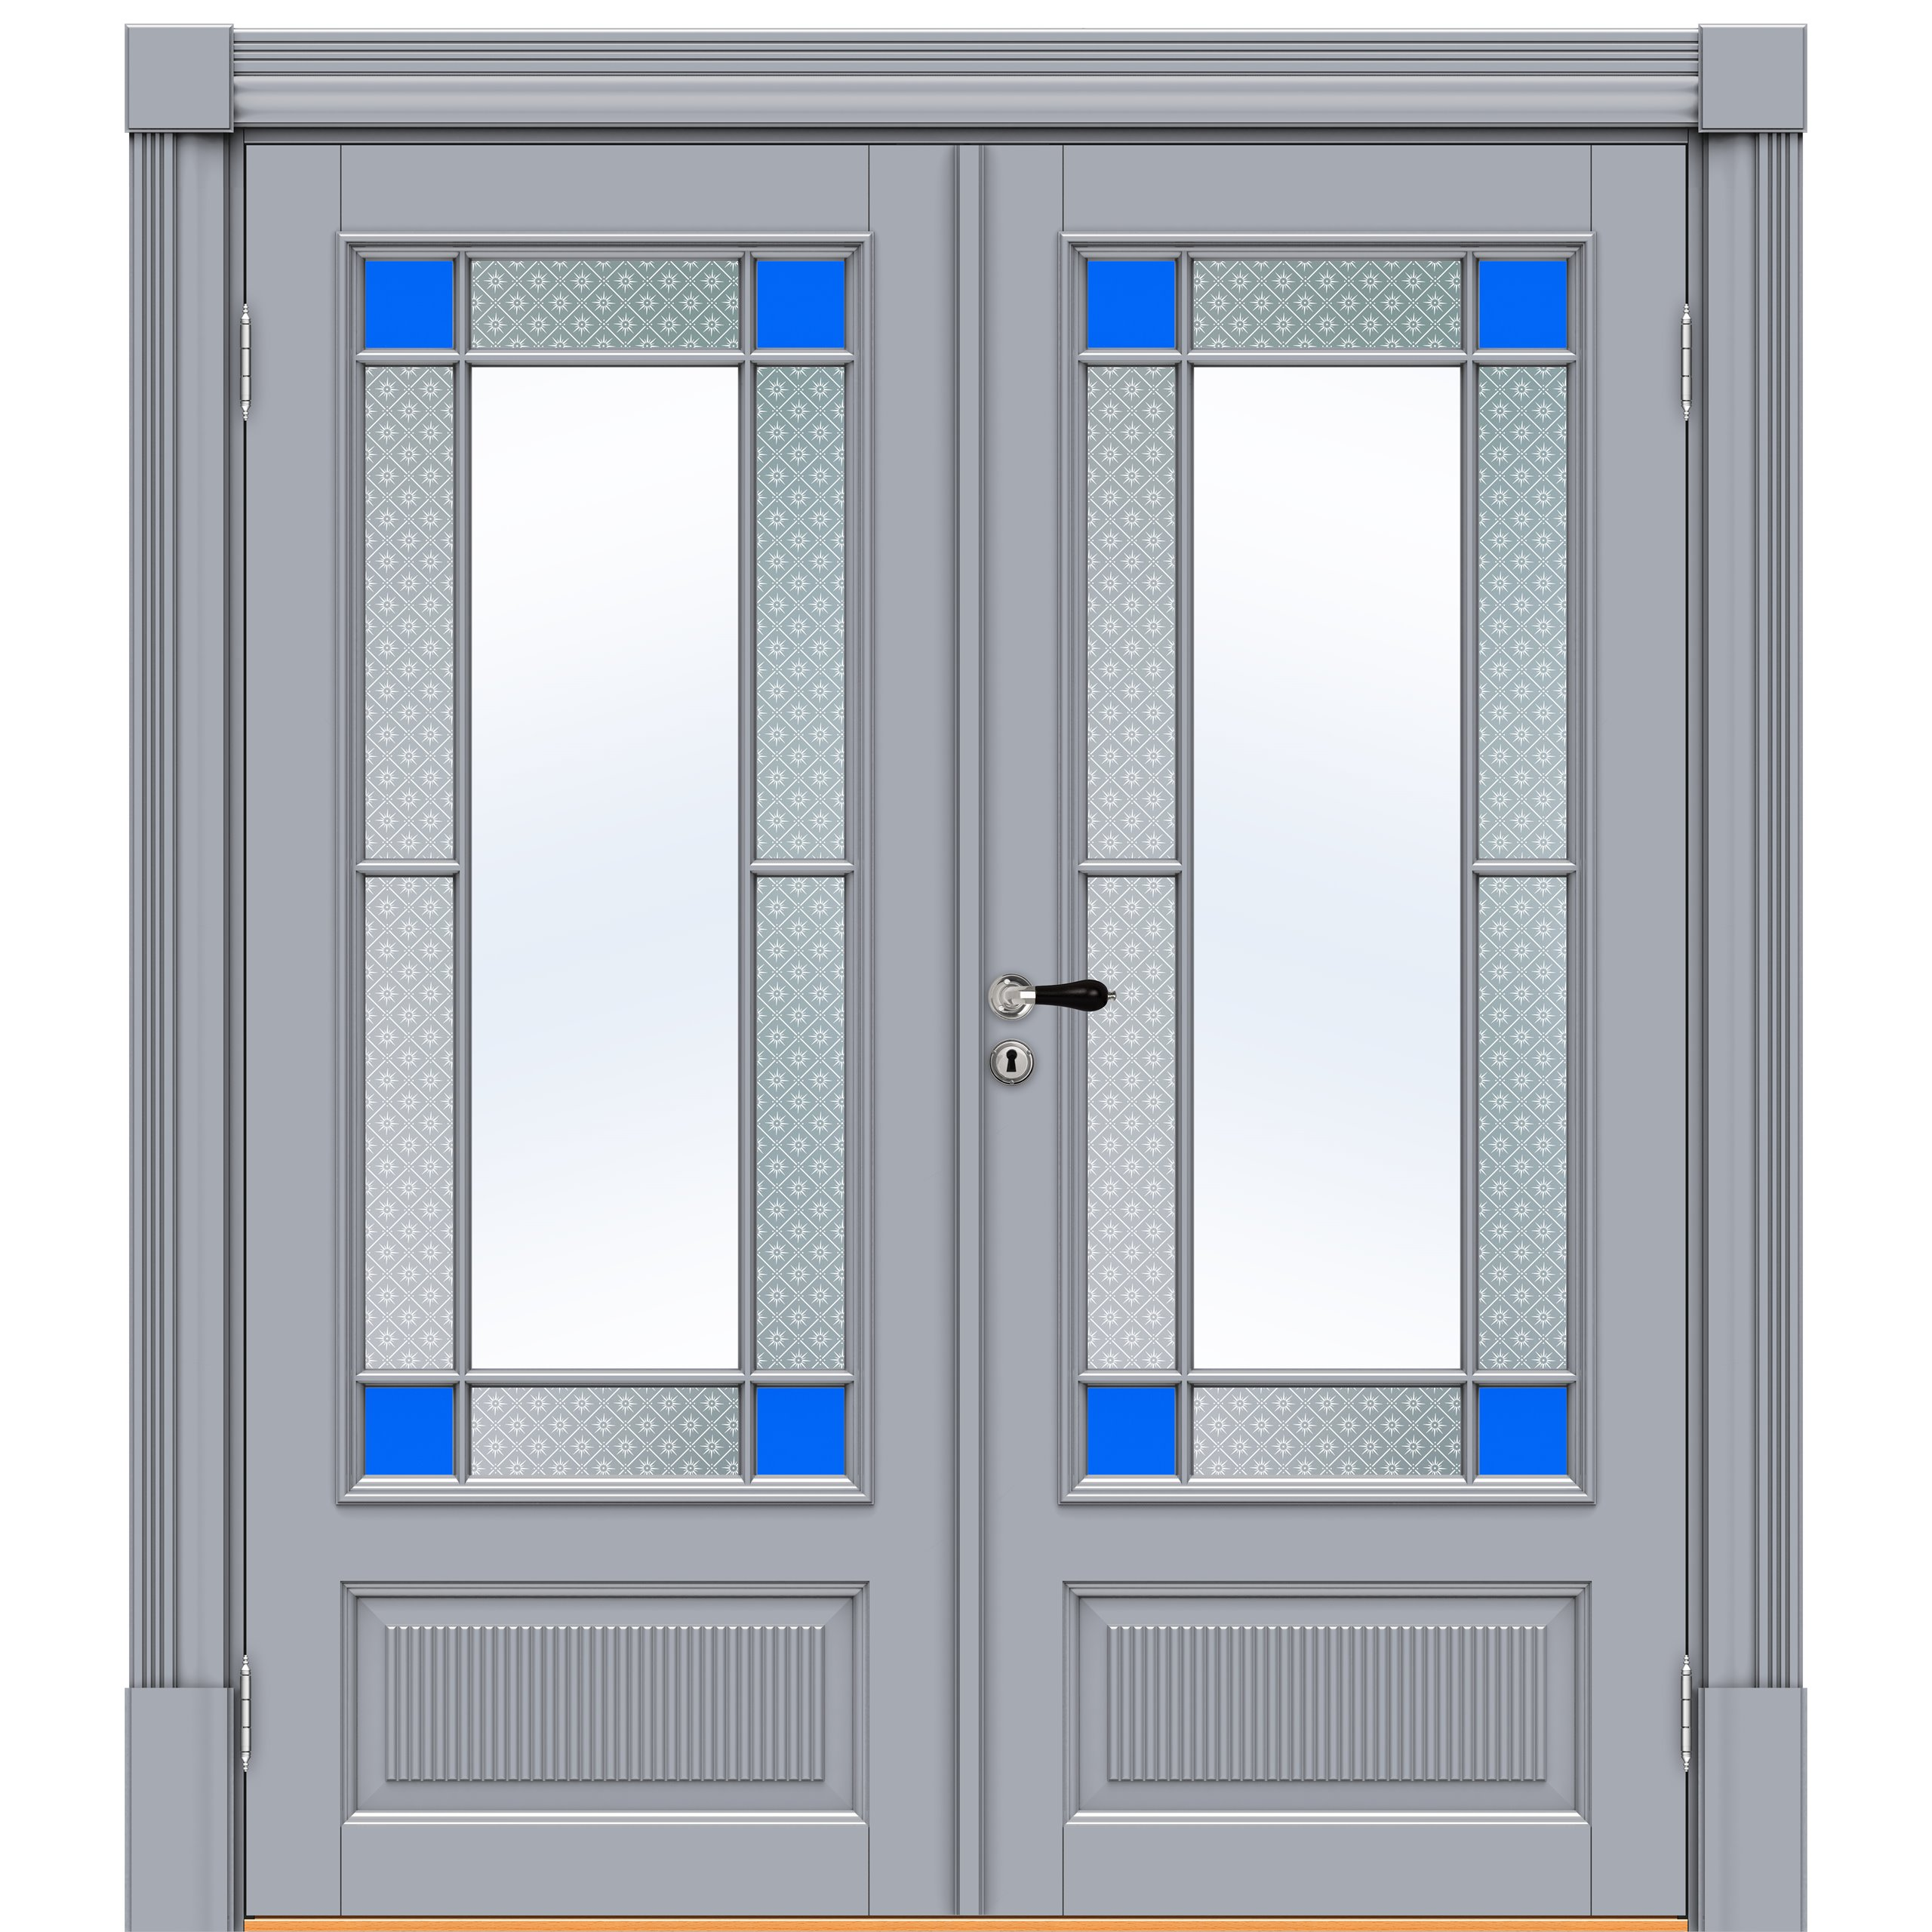 Sekel-7323,-Double,-Arch-flat,-blue,-NCS-S-3005-R80B